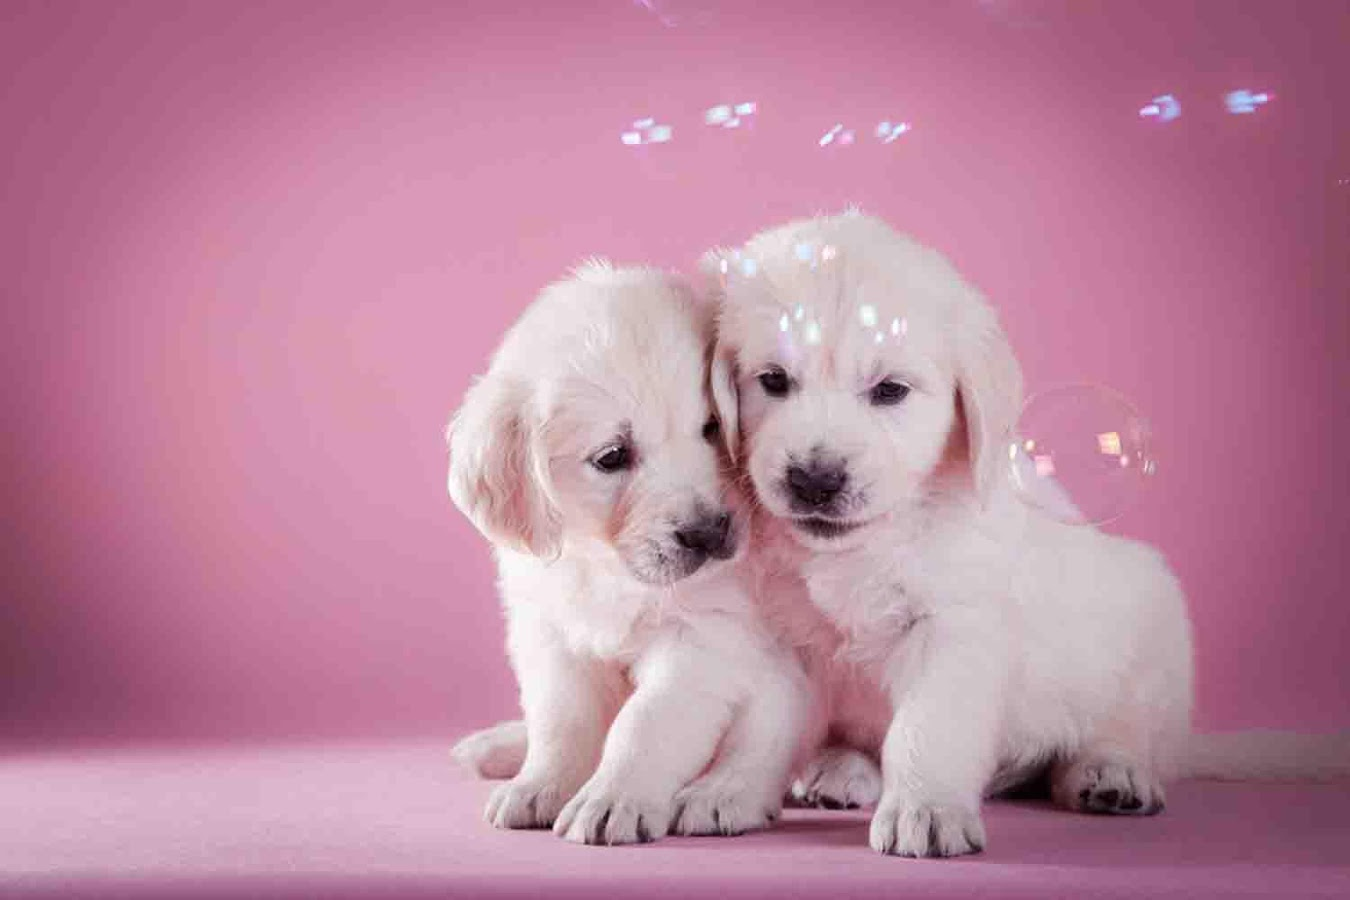 Cute Puppy Backgrounds Android Apps on Google Play 1350x900